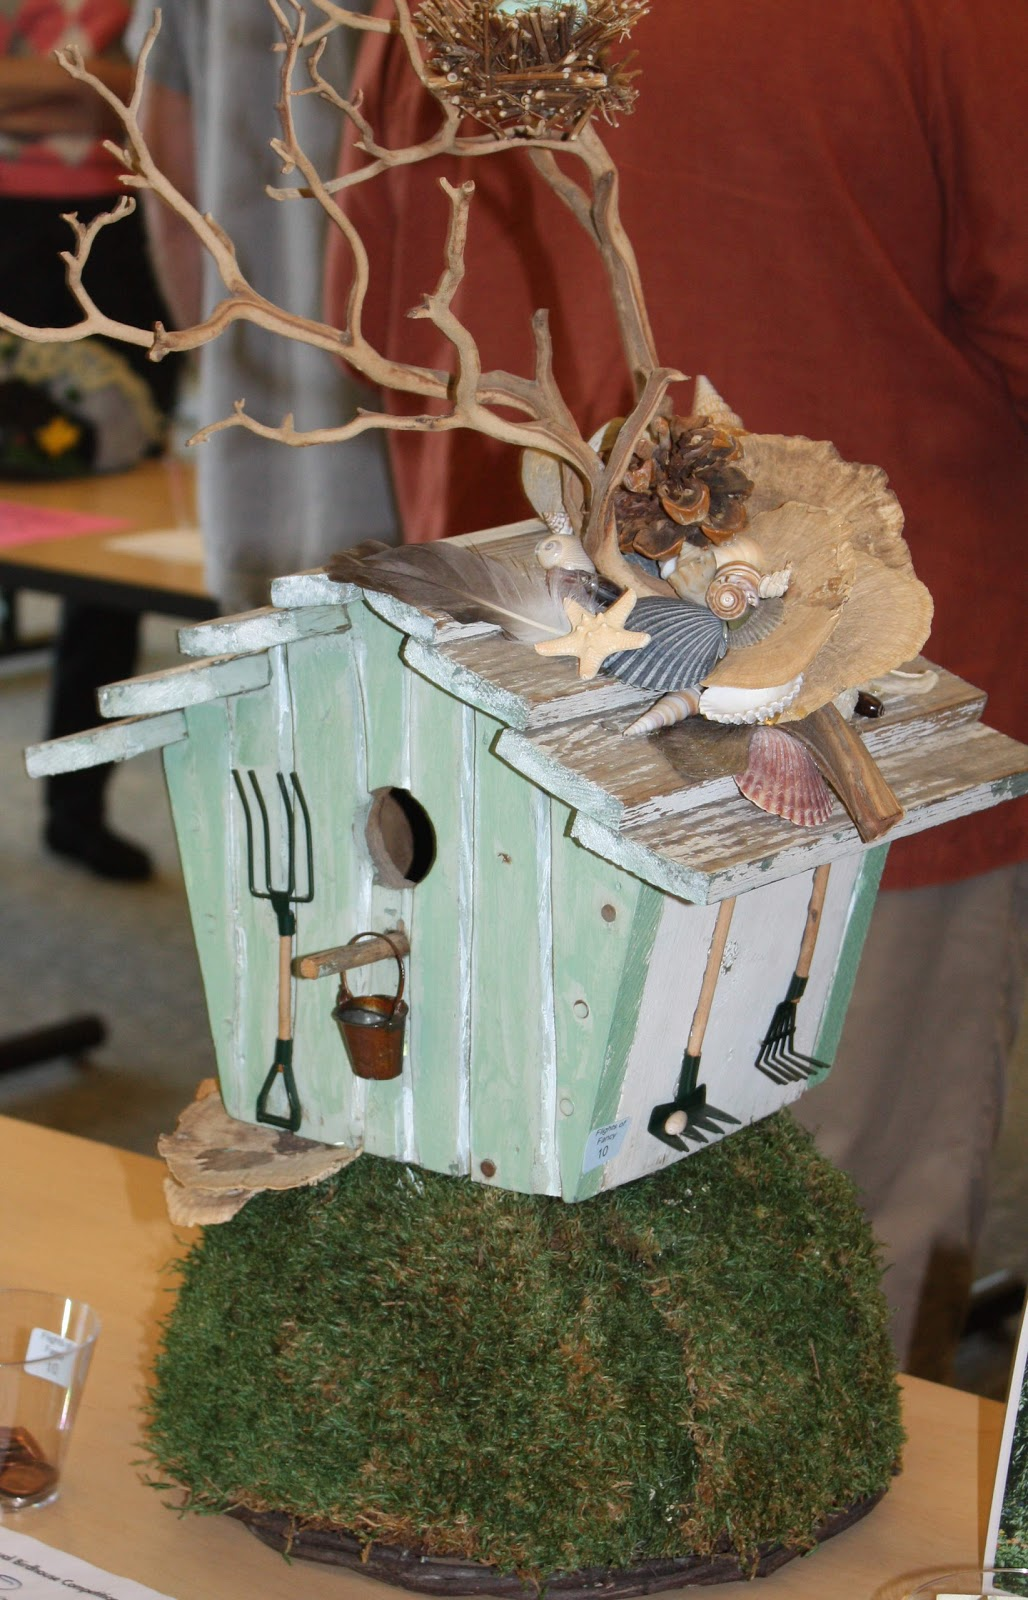 diy-bird-houses-3